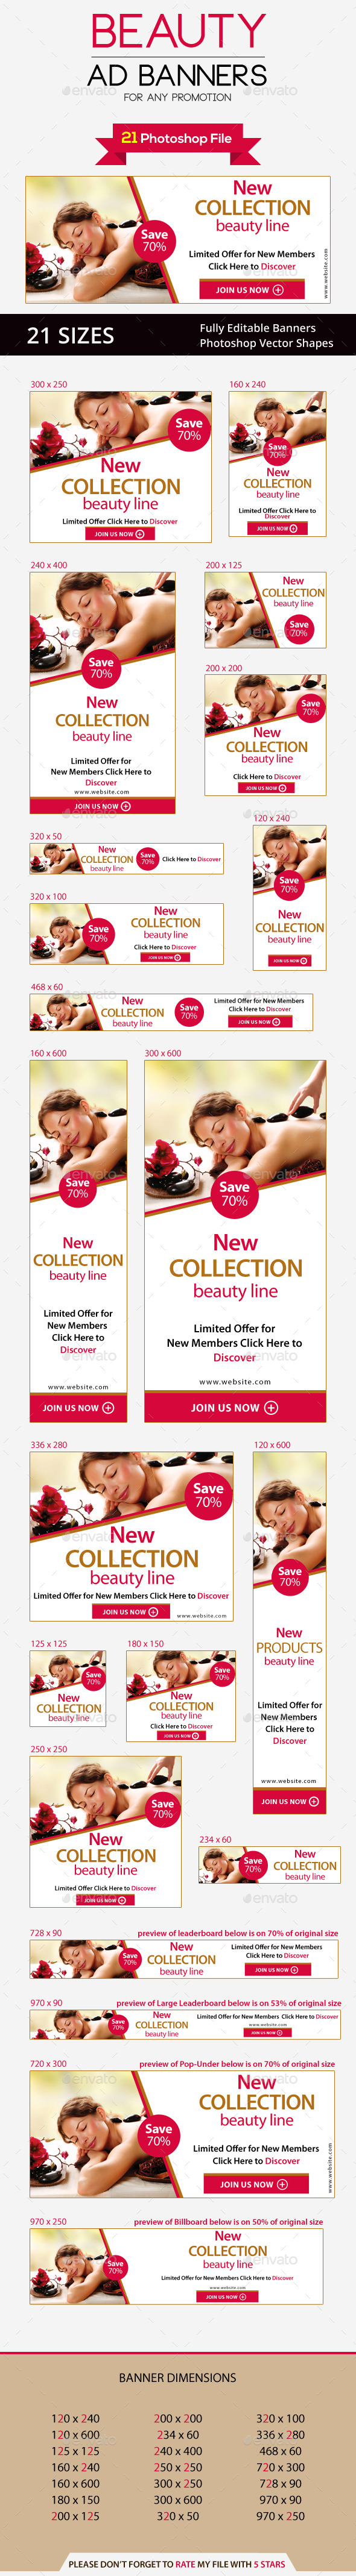 Beauty Ad Banners - Banners & Ads Web Elements